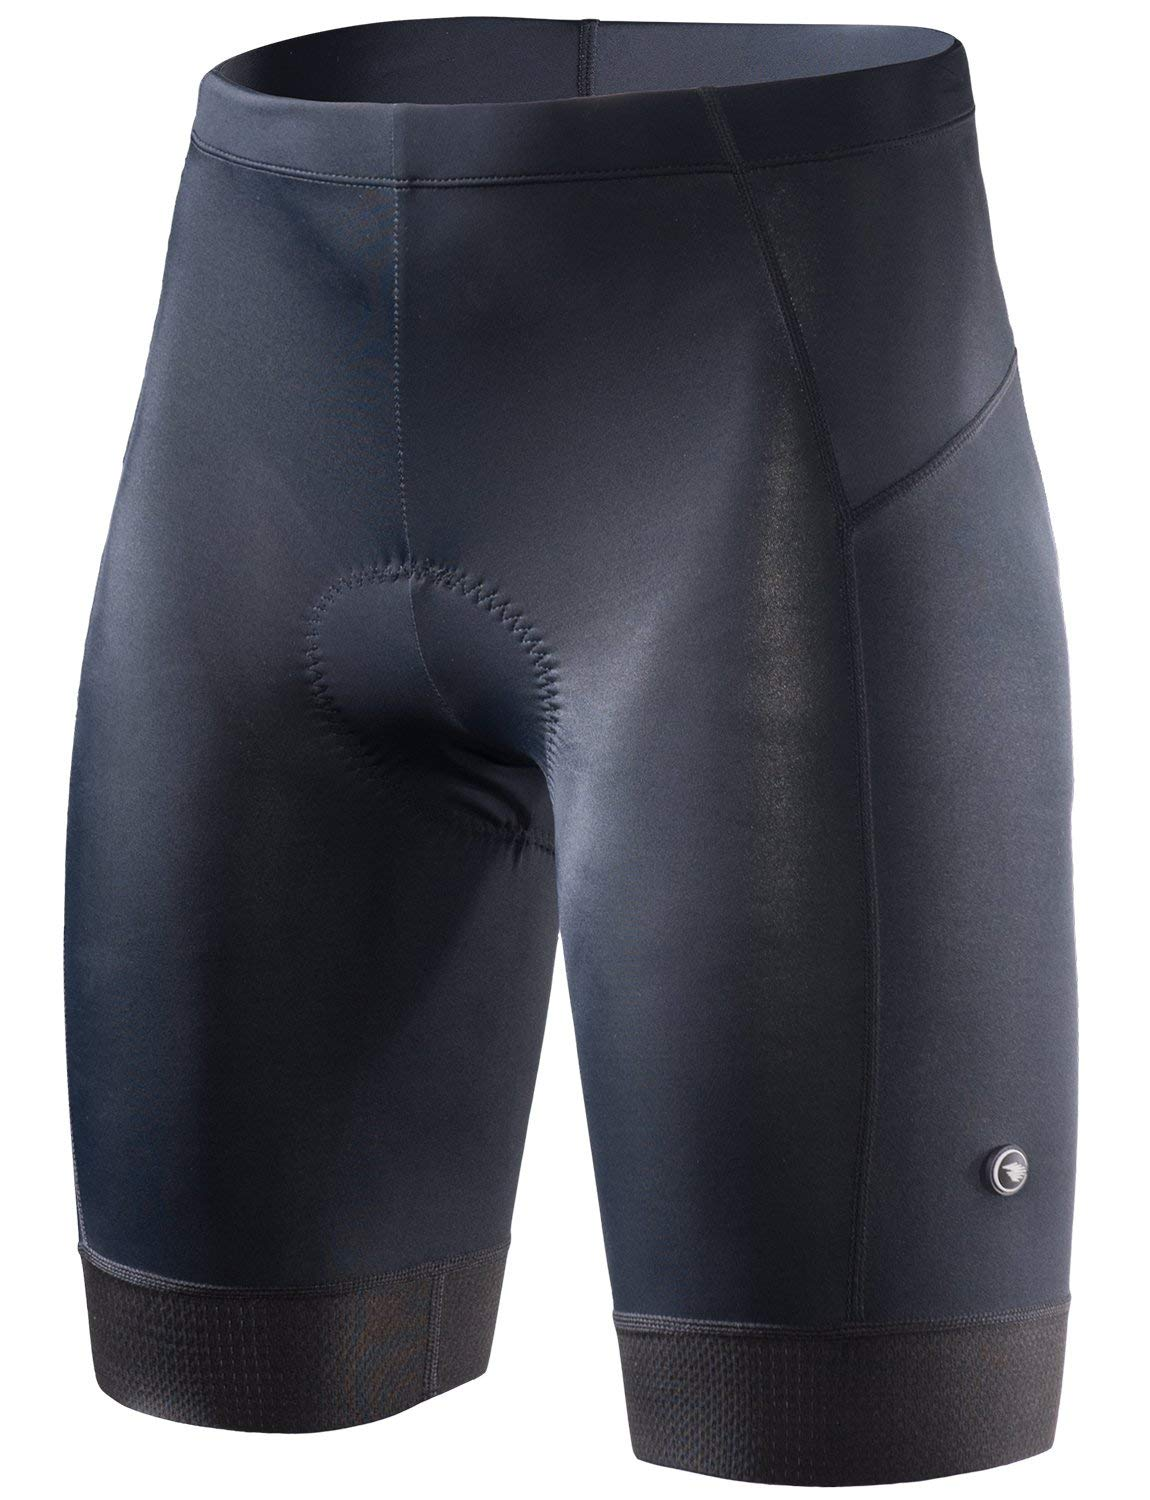 RION Women's Bike Padded Shorts Cycling Pants Bicycle Tights by RION